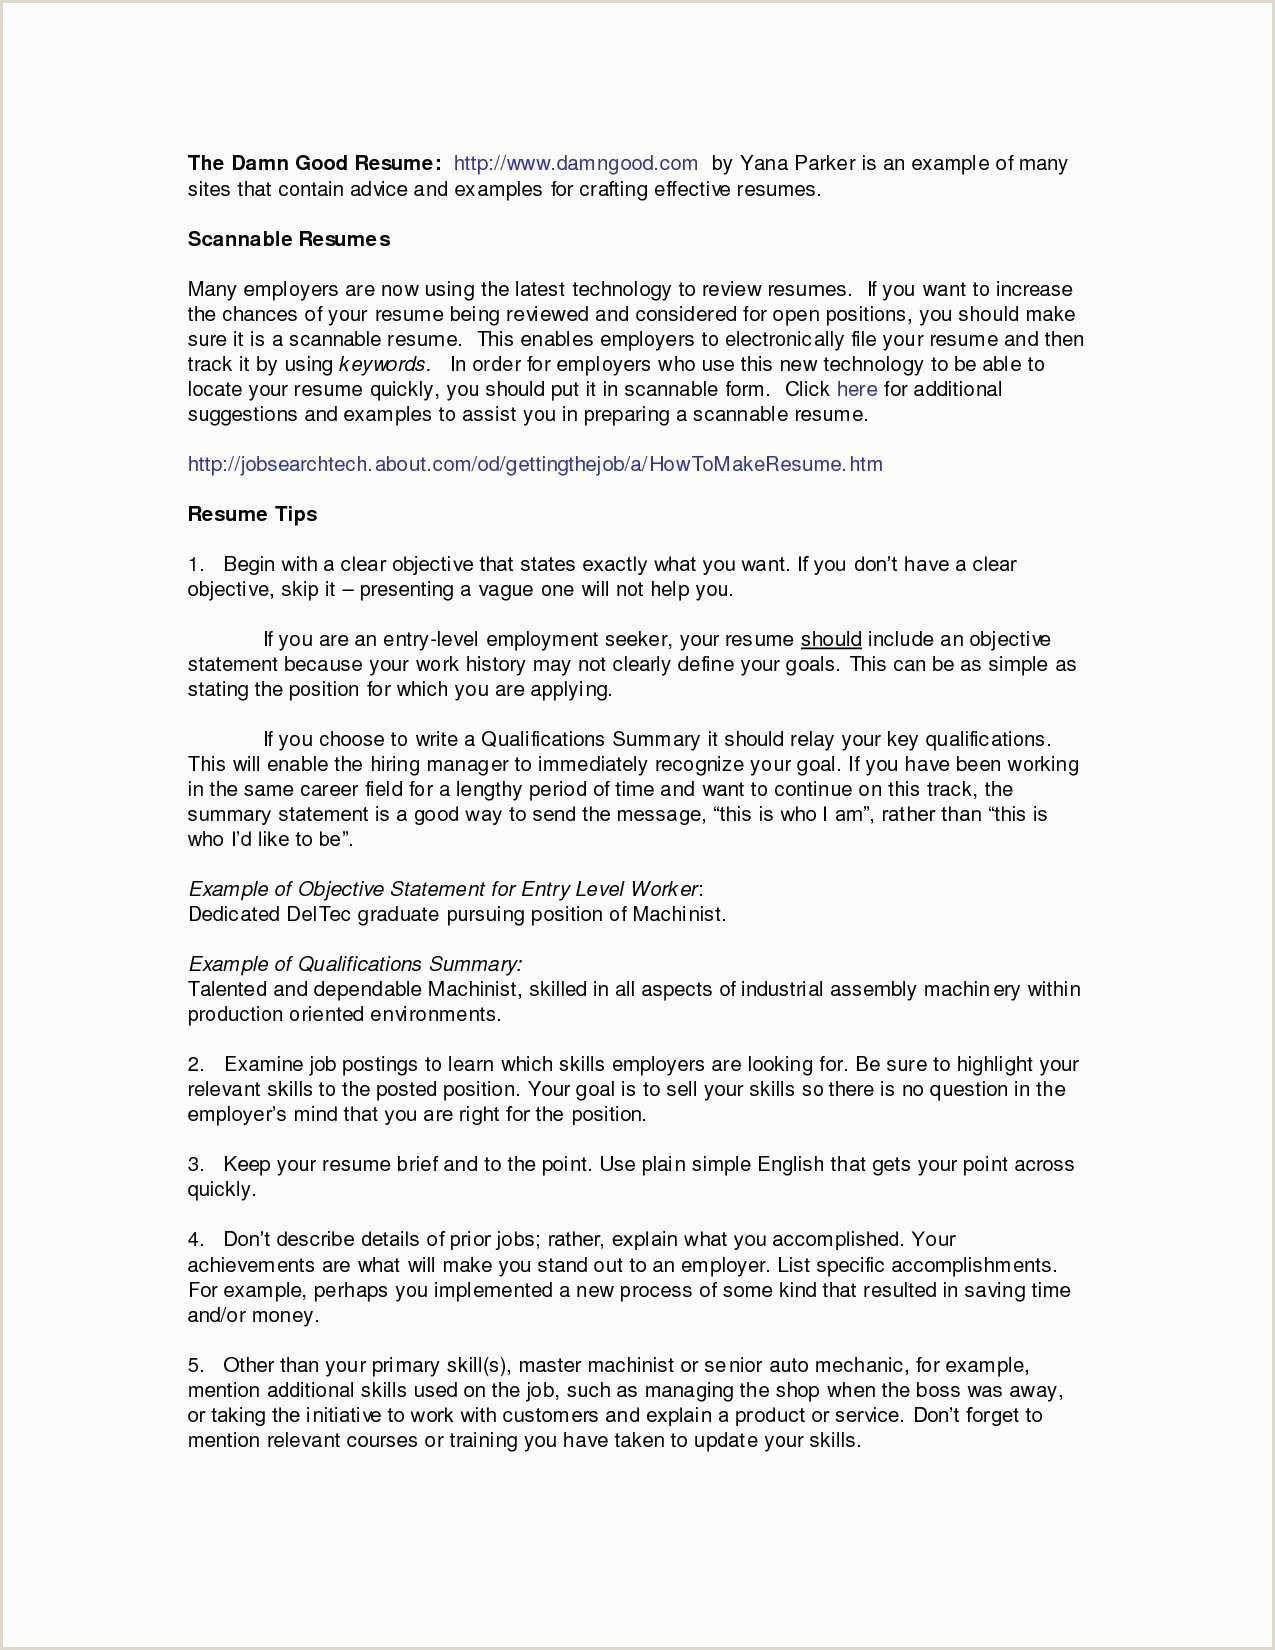 Food Service Manager Resume Catering Service Cover Letter Awesome Cover Letter and